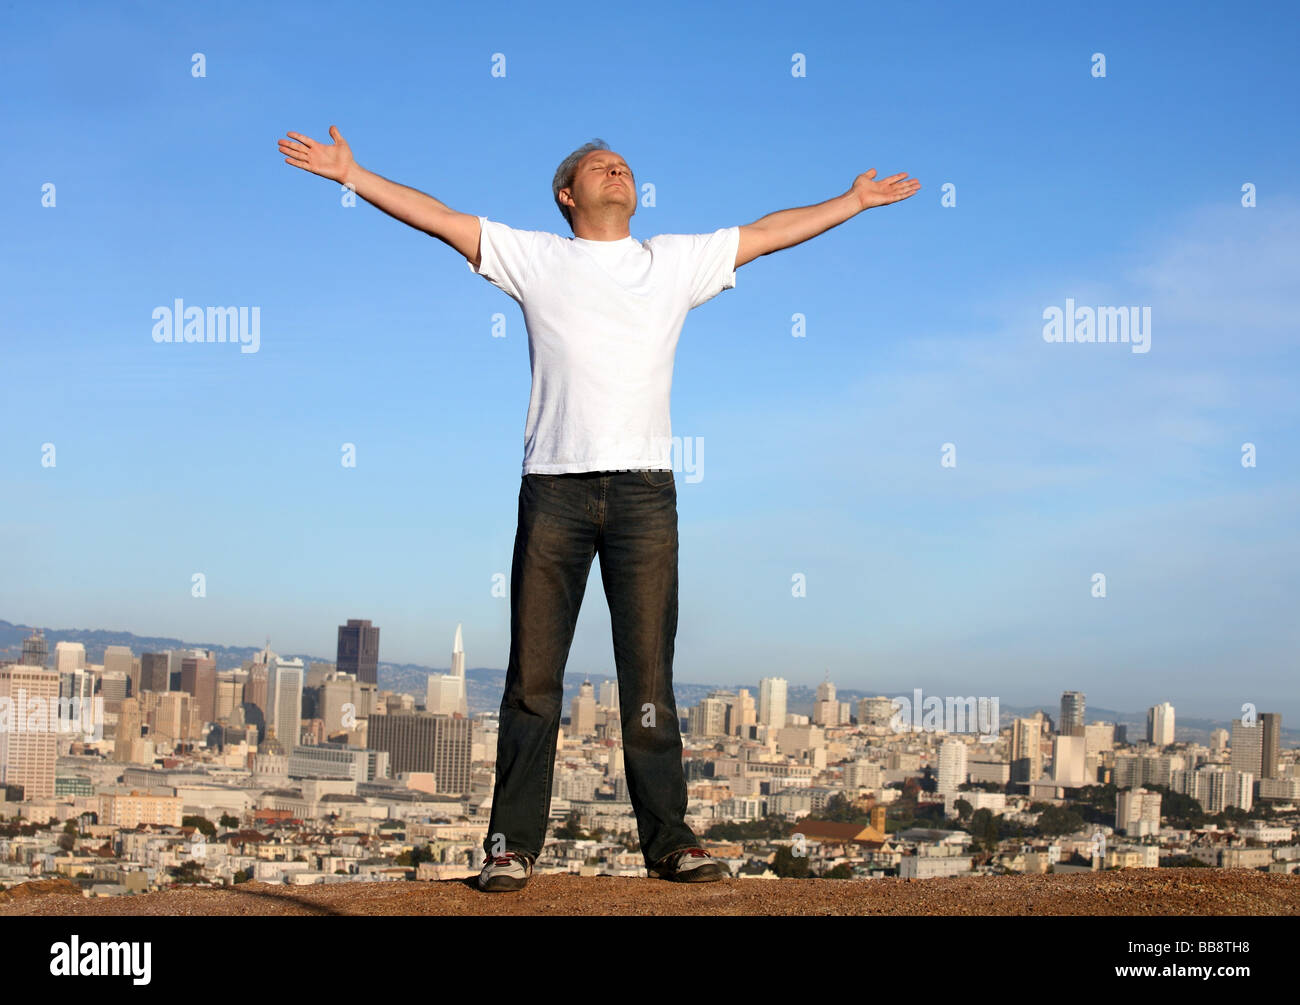 A man standing on a hill with a view of San Francisco his arms raised - Stock Image